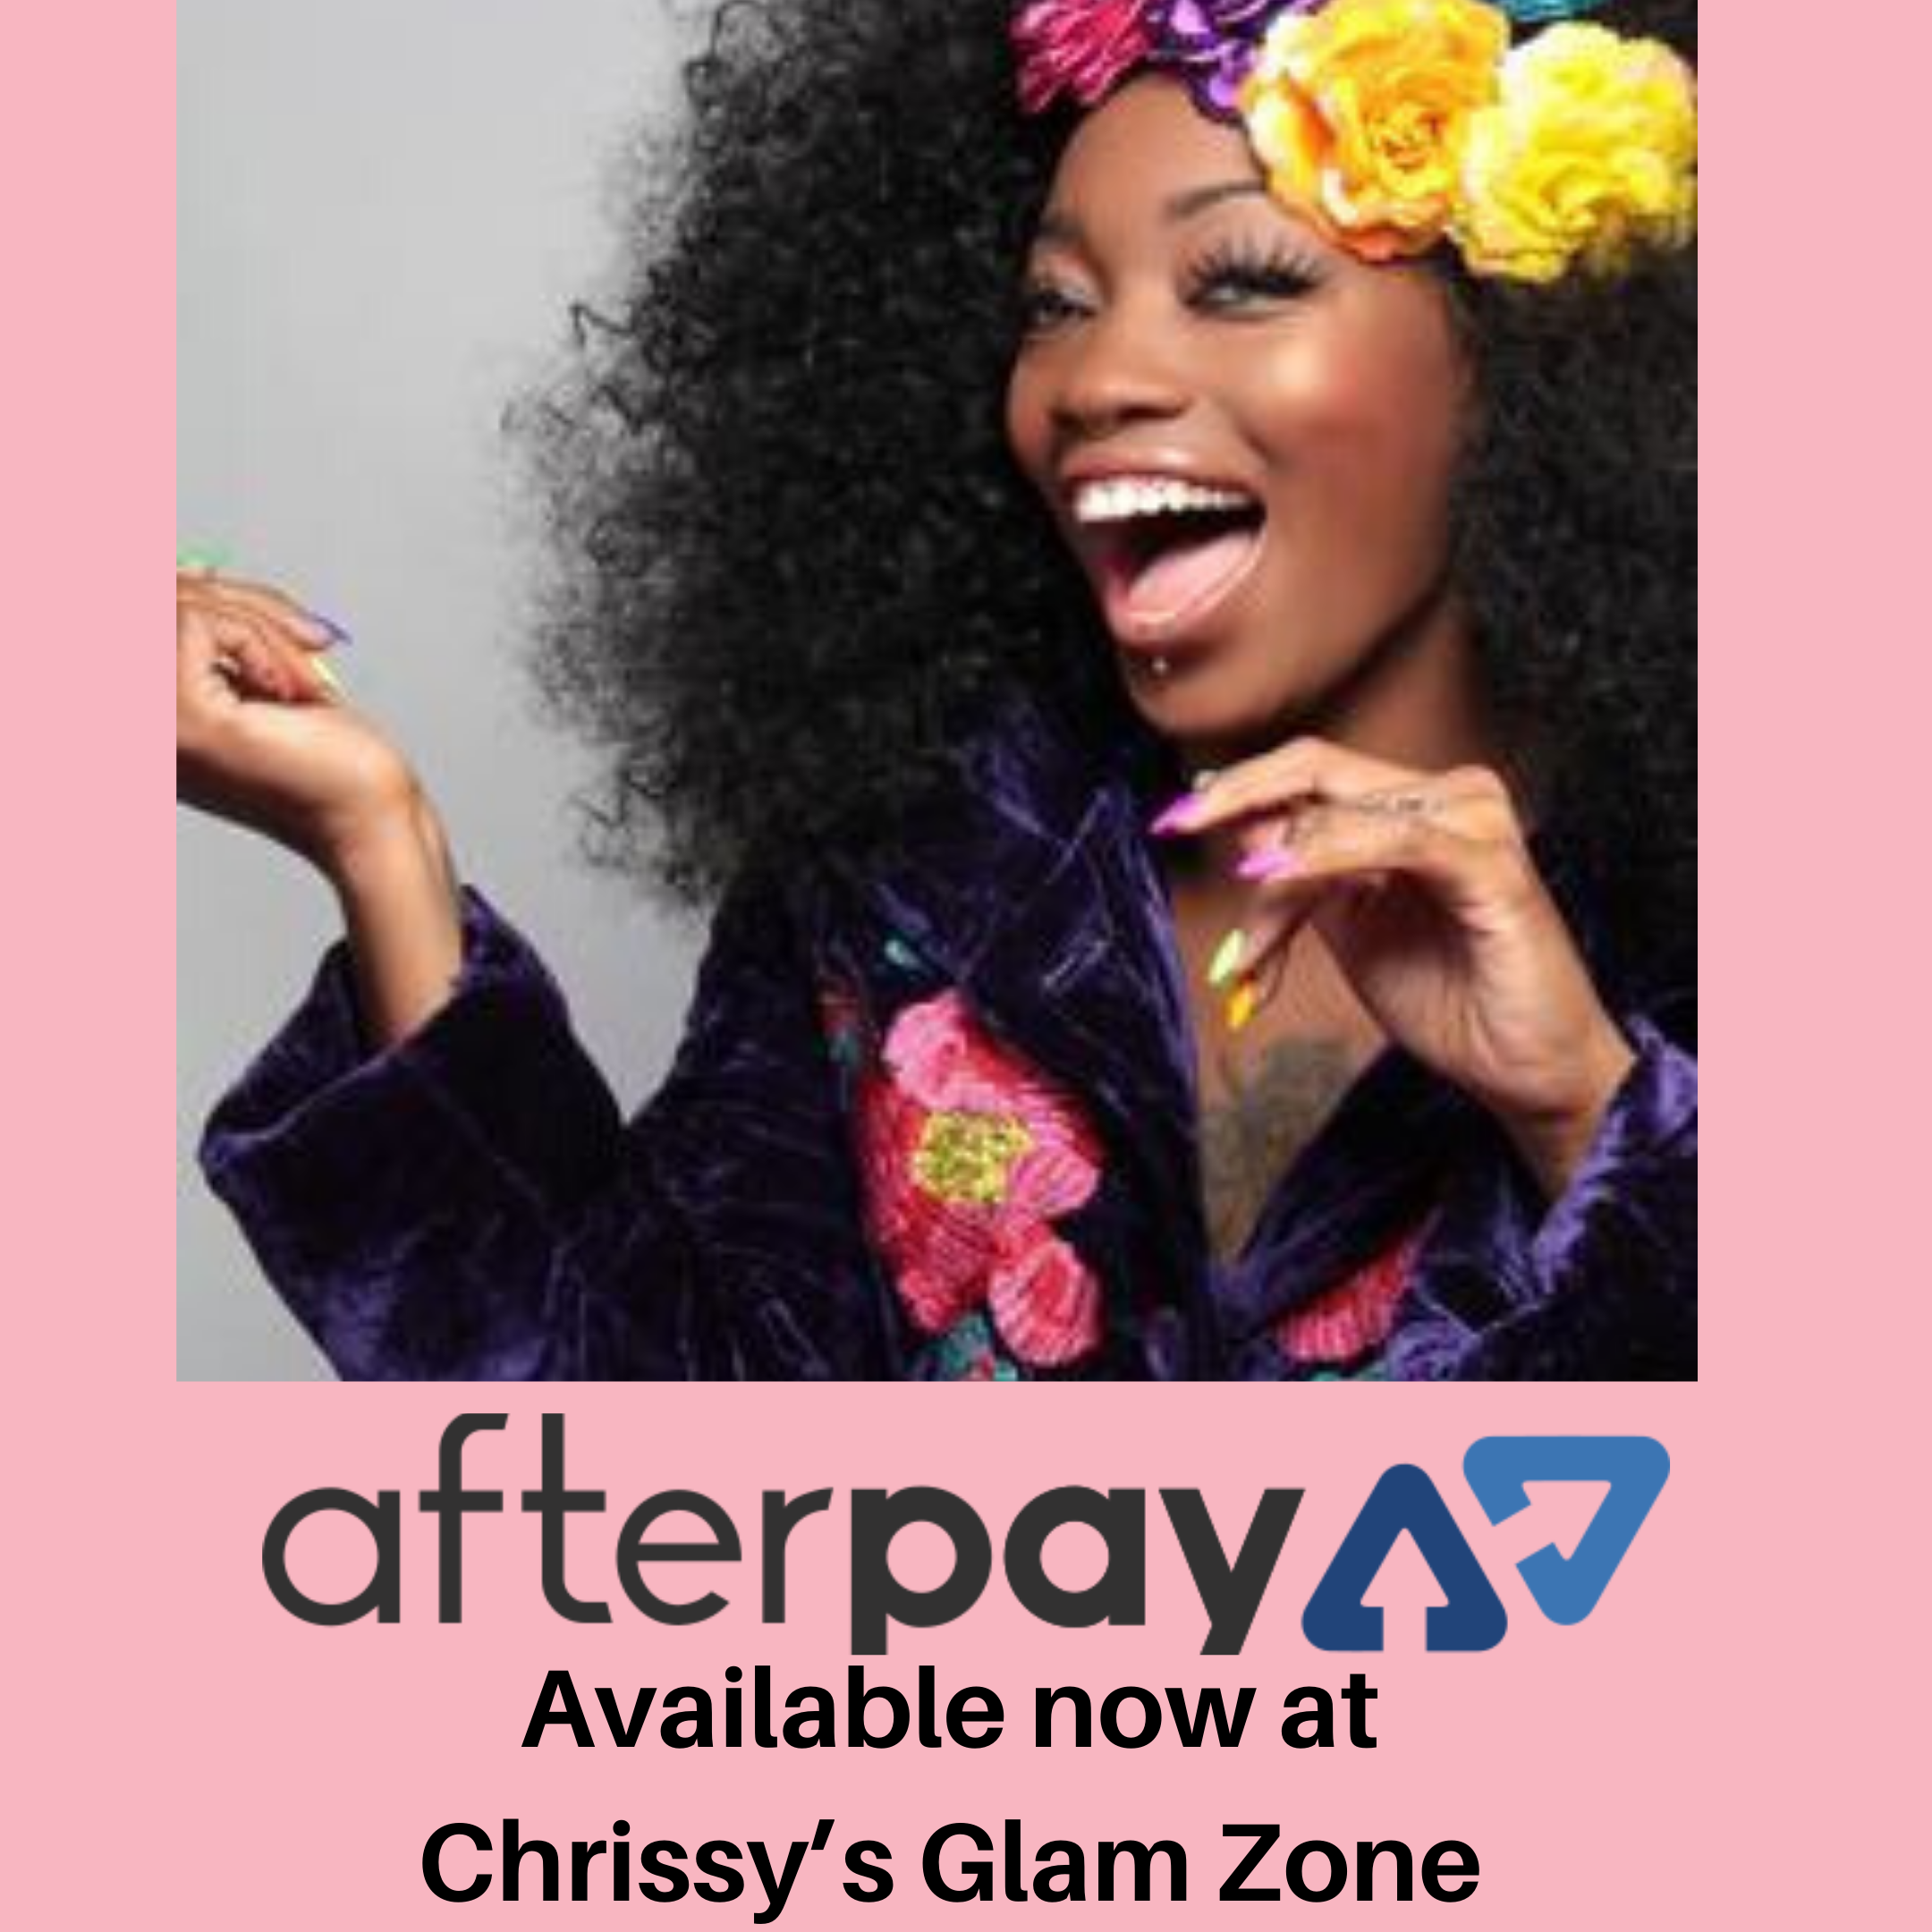 AfterPay is now available at Chrissy's Glam Zone!! Shop Now...Pay Later😍😍😍 . . . . . #chrissysglamzone #buynowpaylater #Sale #earrings #statementearrings #presidentsday #presidentsdaysale  #afterpayit #than #later #when #those #afterpayavailable #these #chase #afterpay #shoponline #afterpaystore